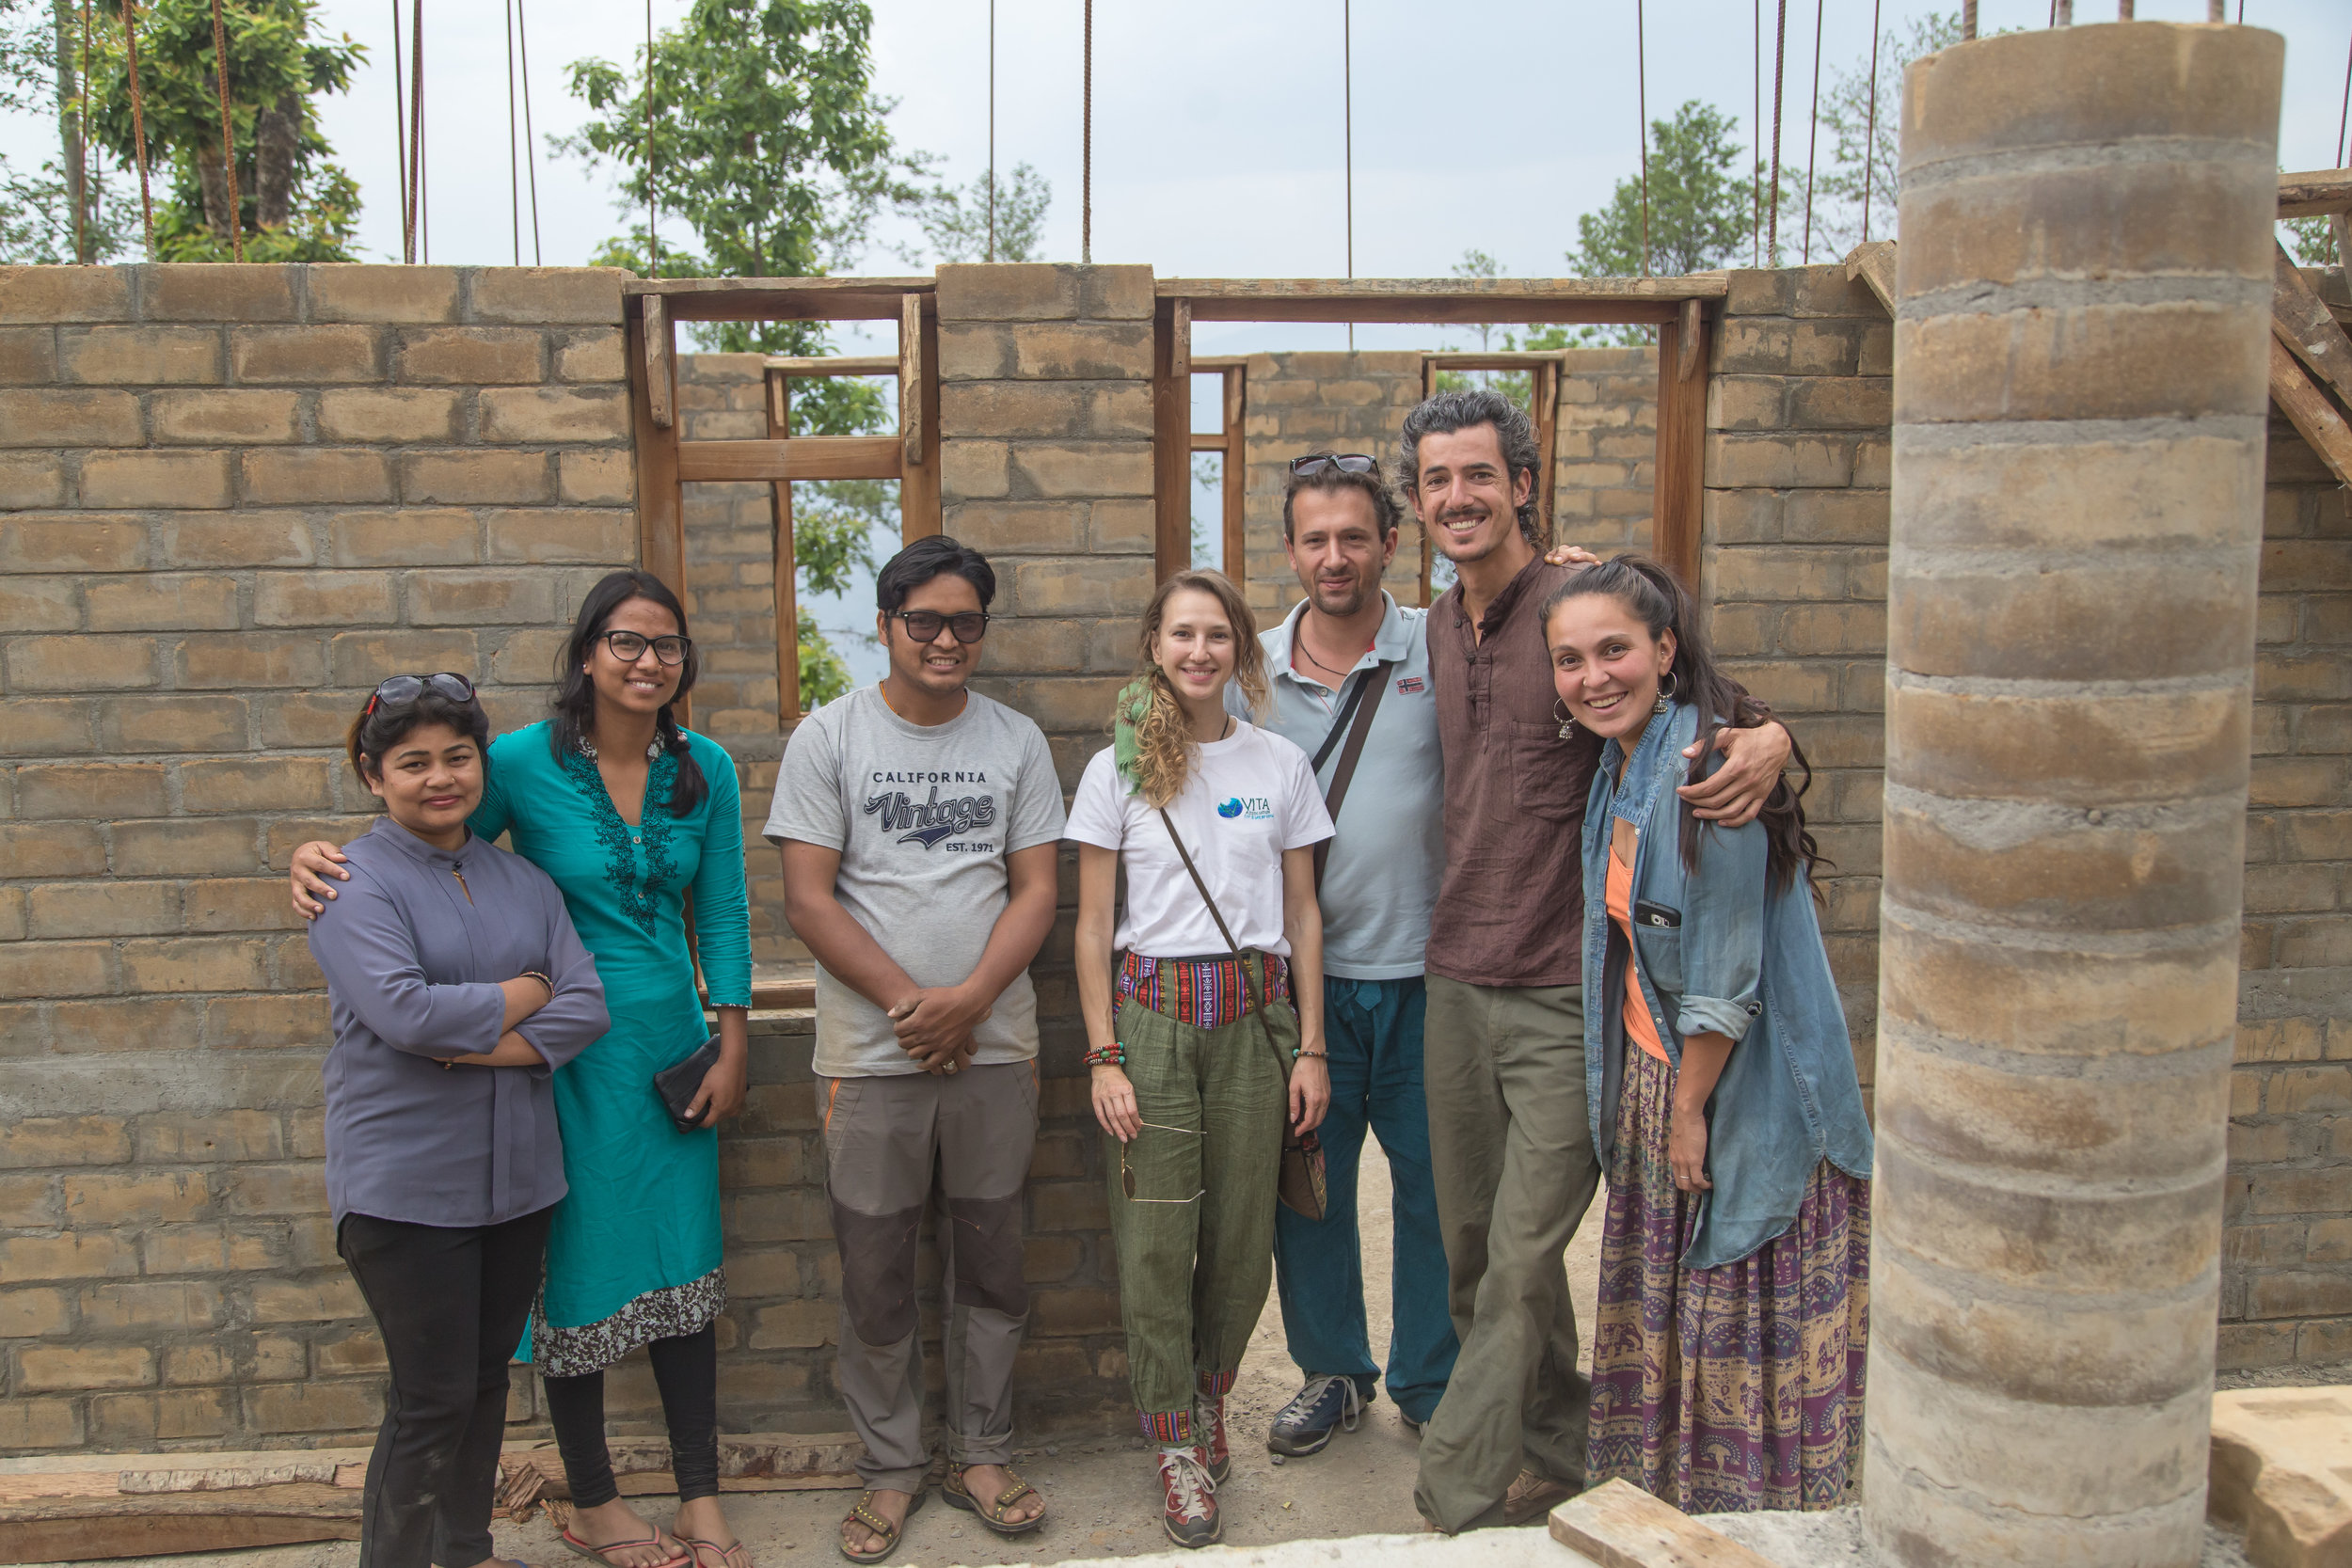 Some of the team that helped make it all happen: Mina Thapa (orphanage owner), Sunita Pandey (translator), Mr. Thapa, Valentina (donor), Francesco, Orion Haas (co-founder of Conscious Impact), Mariana Jimenez (overseeing engineer).